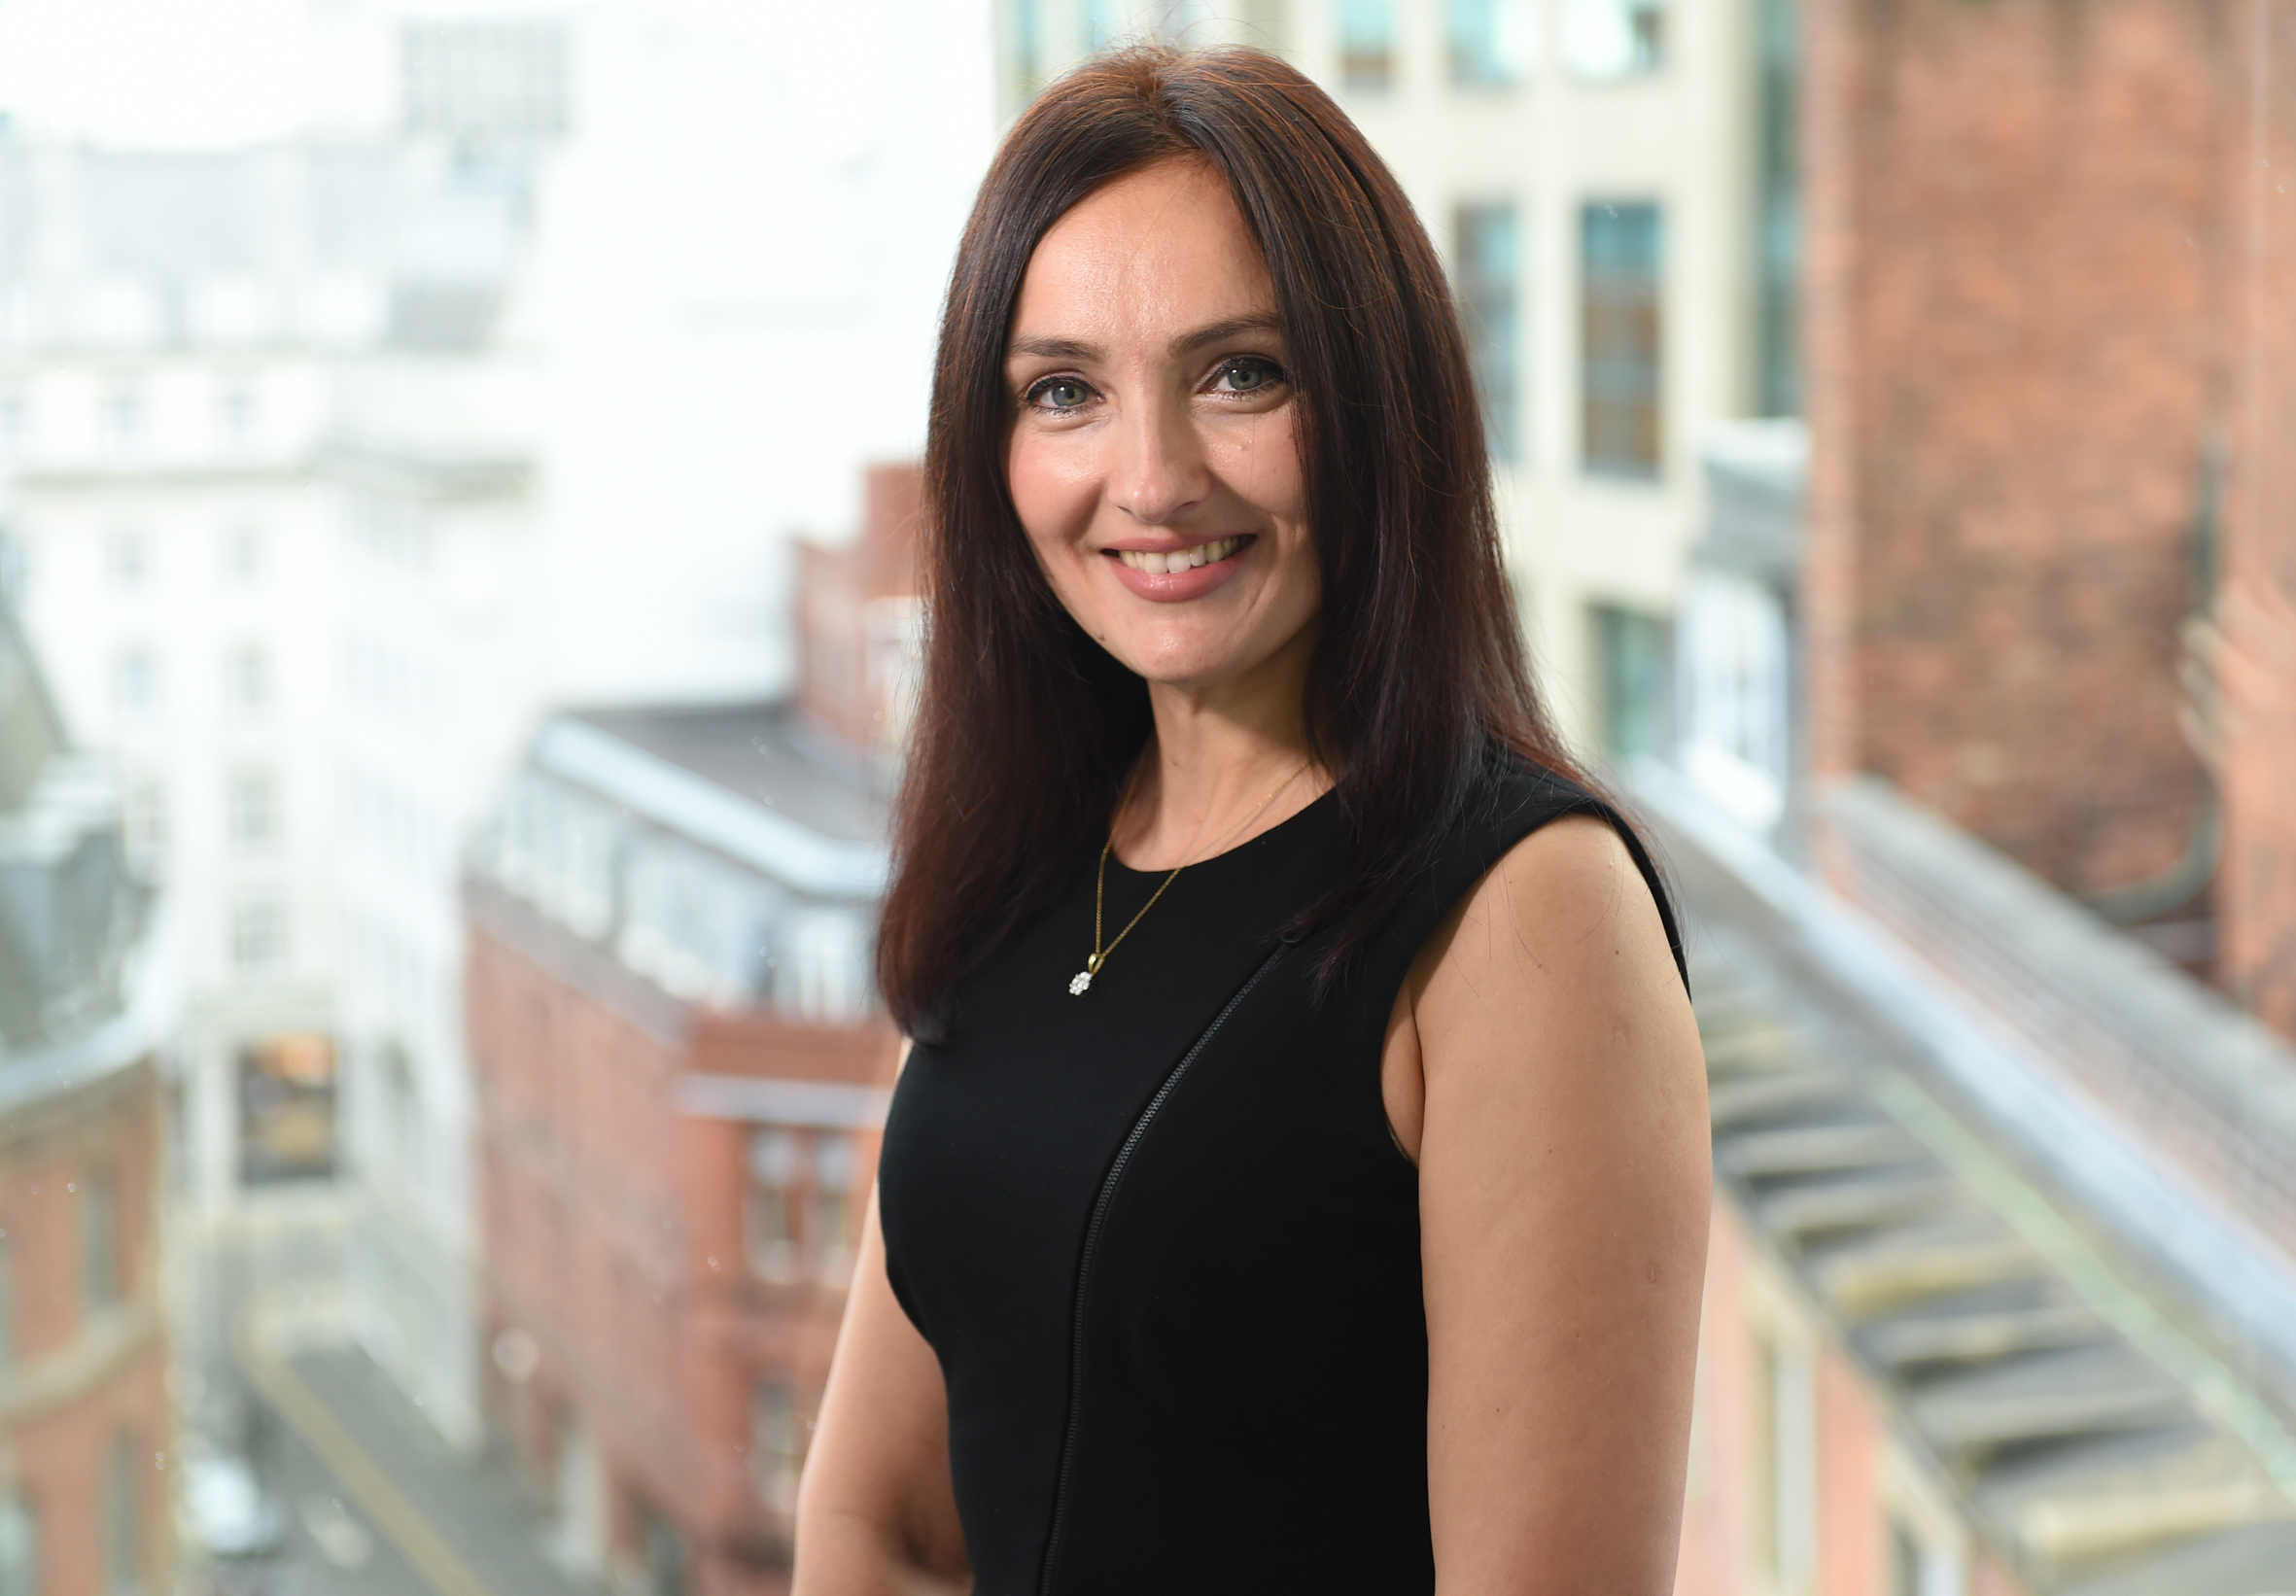 Nataliya Healey - UK commercial property expert - Professional headshot